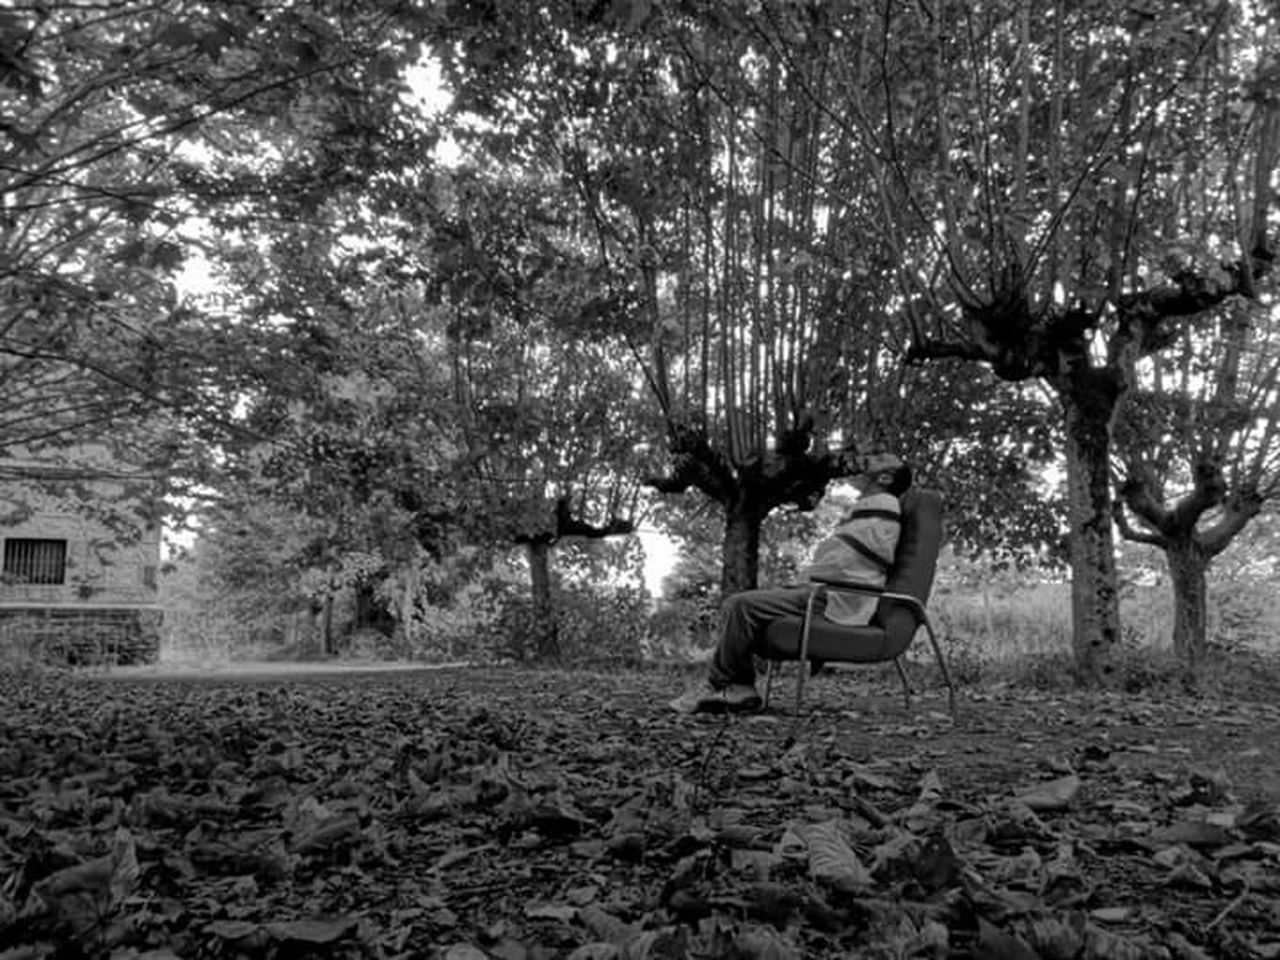 tree, sitting, one person, nature, day, relaxation, outdoors, full length, leaf, growth, young adult, adult, people, pixelated